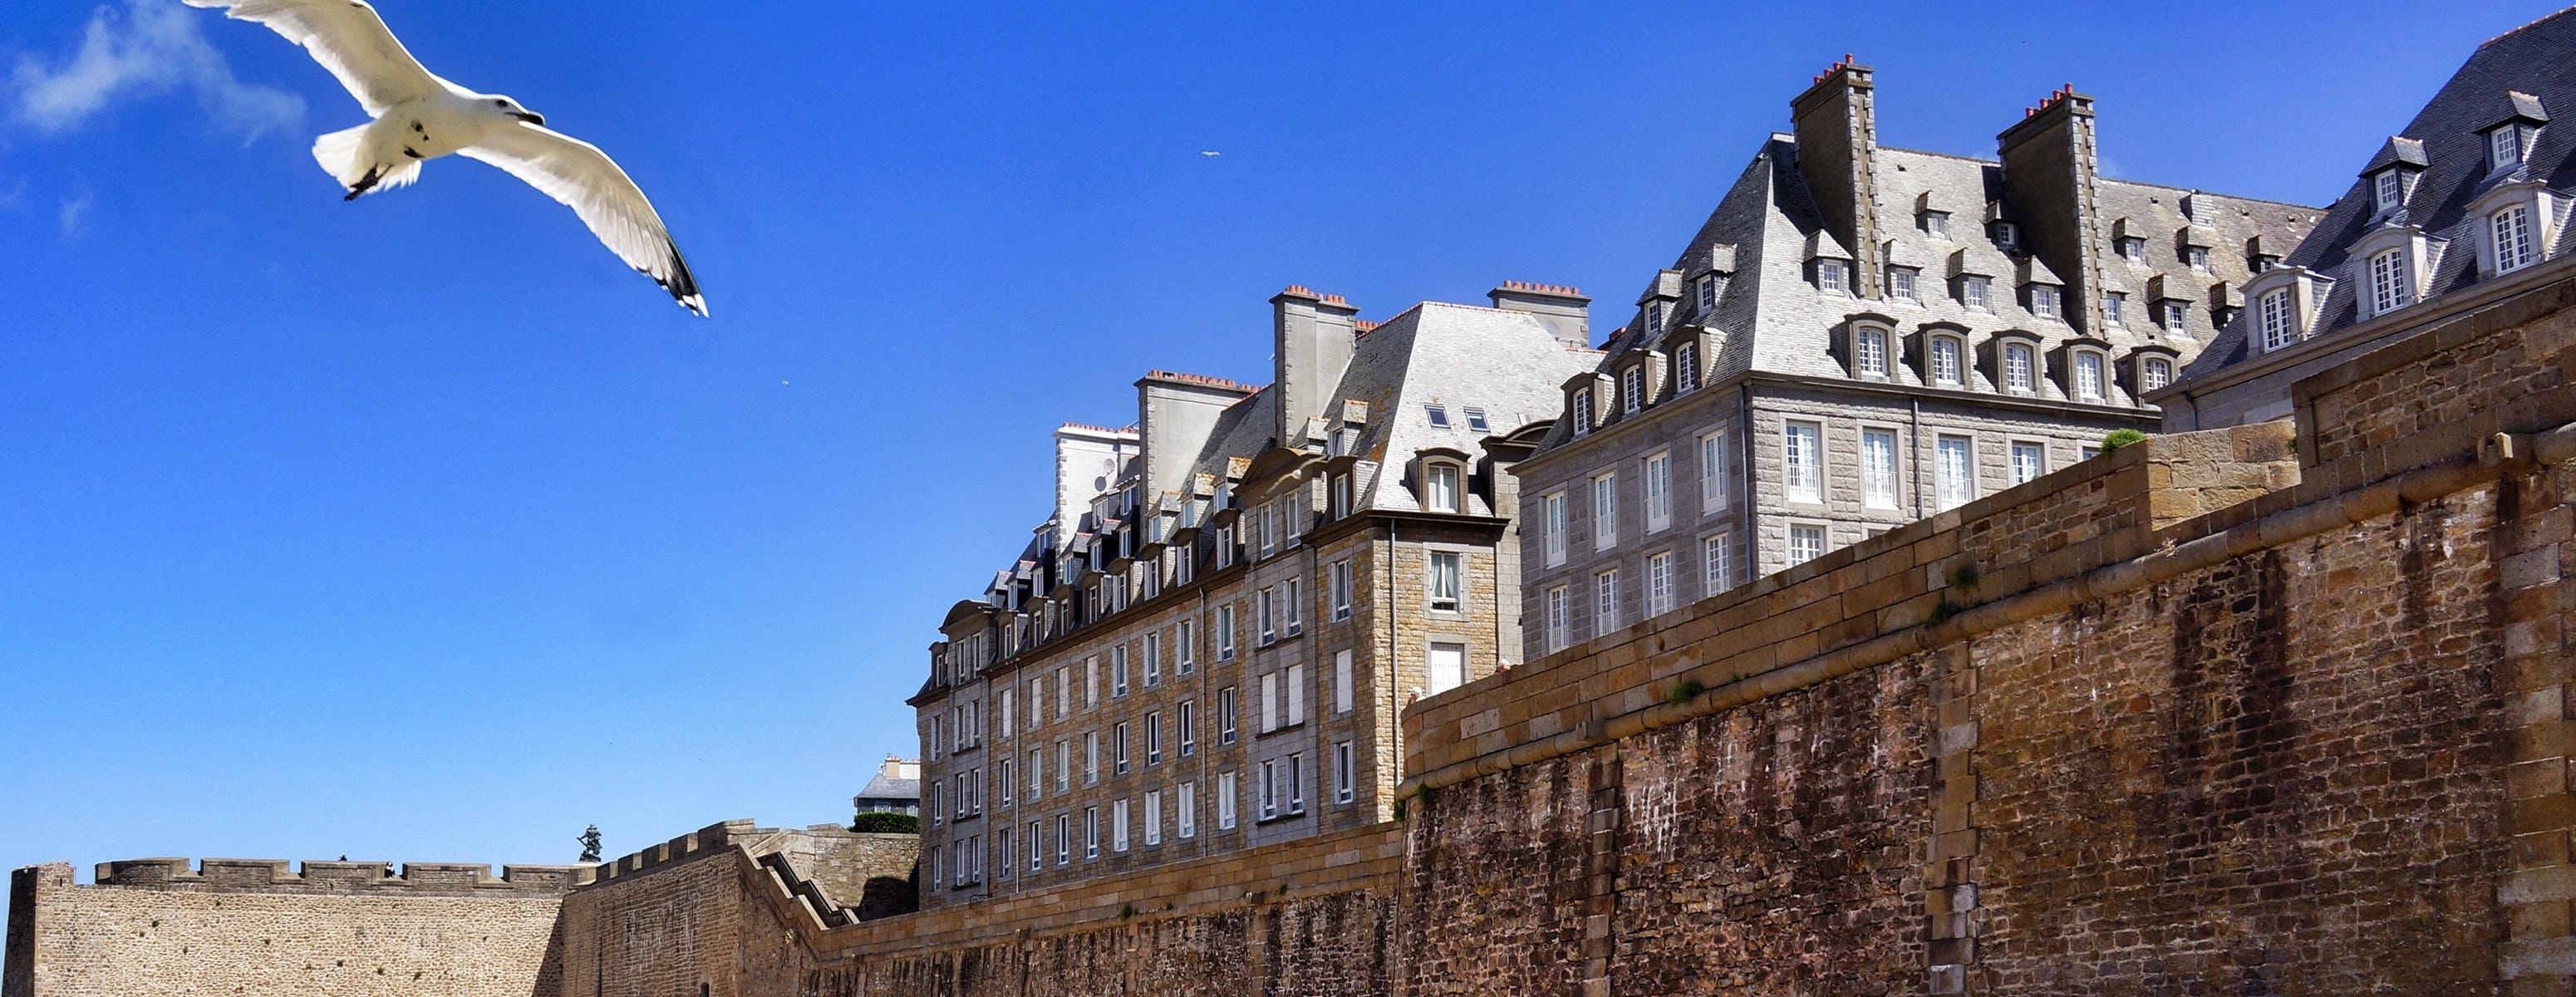 Vacation rentals in Saint-Malo